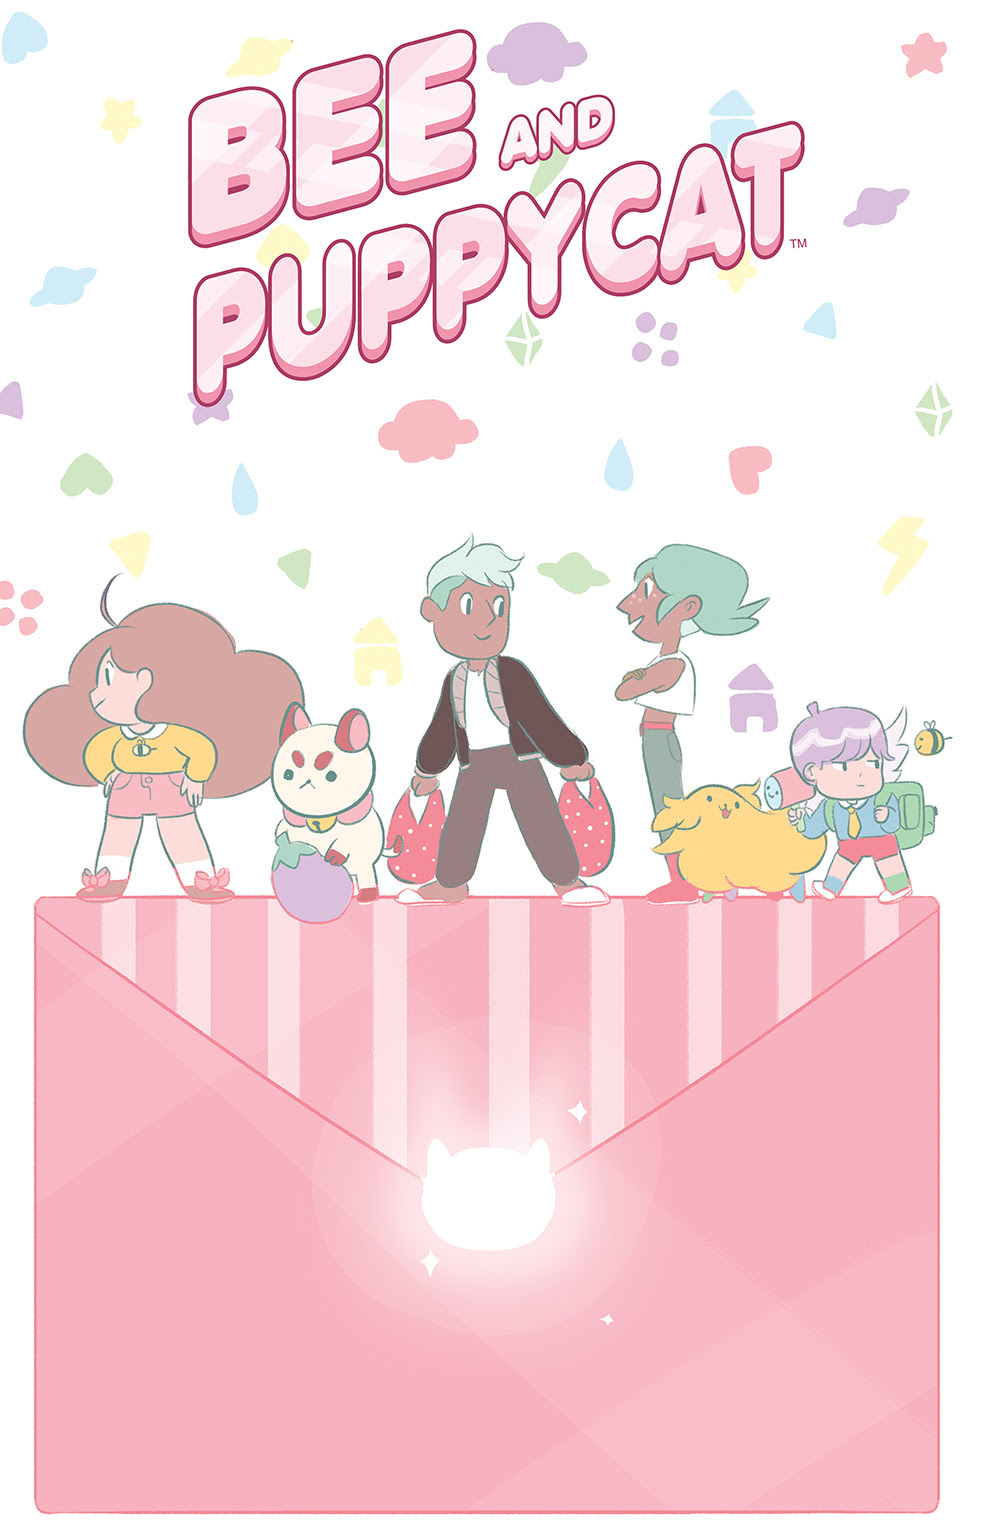 BEE AND PUPPYCAT #4 Cover A by Natasha Allegri